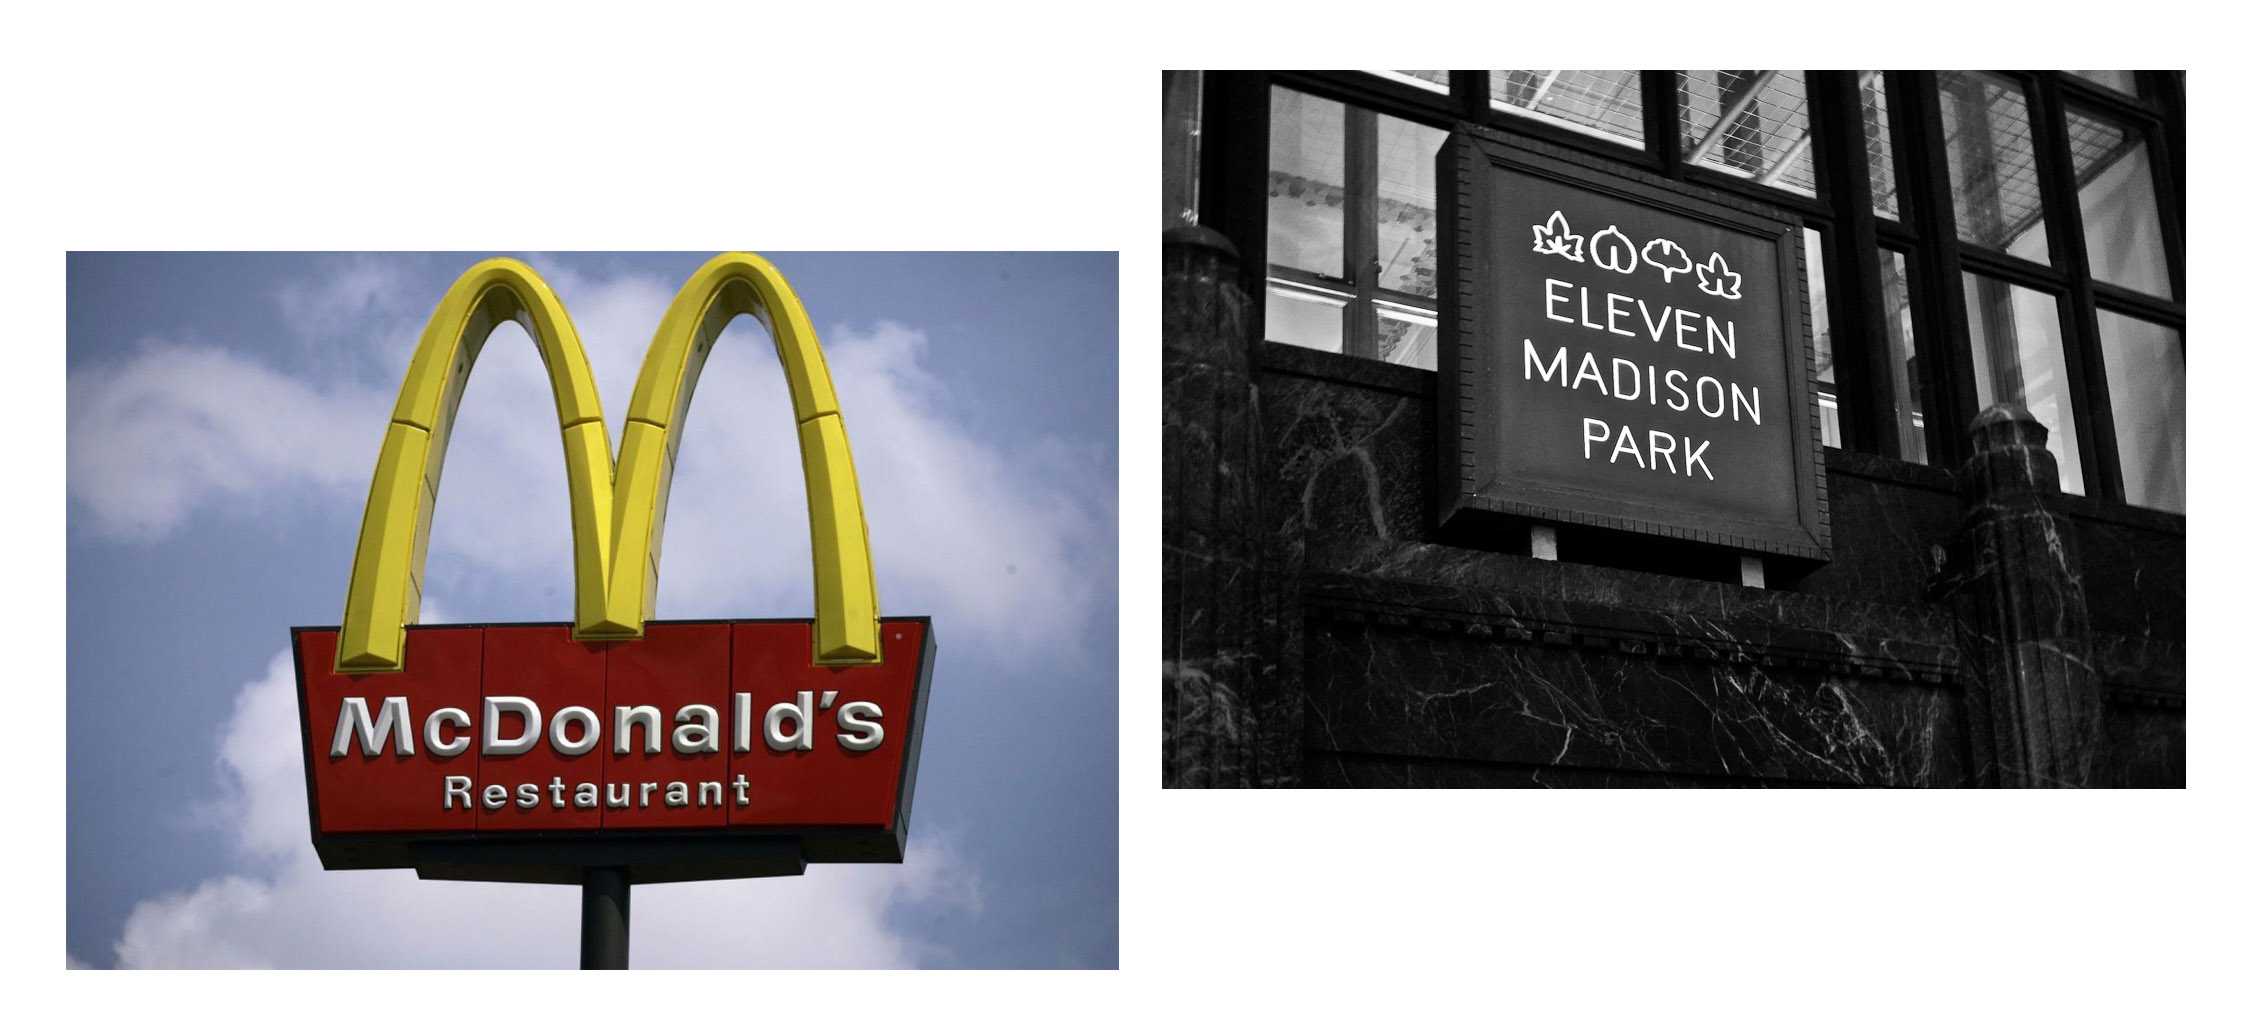 macdonalds eleven madison park branding comparison